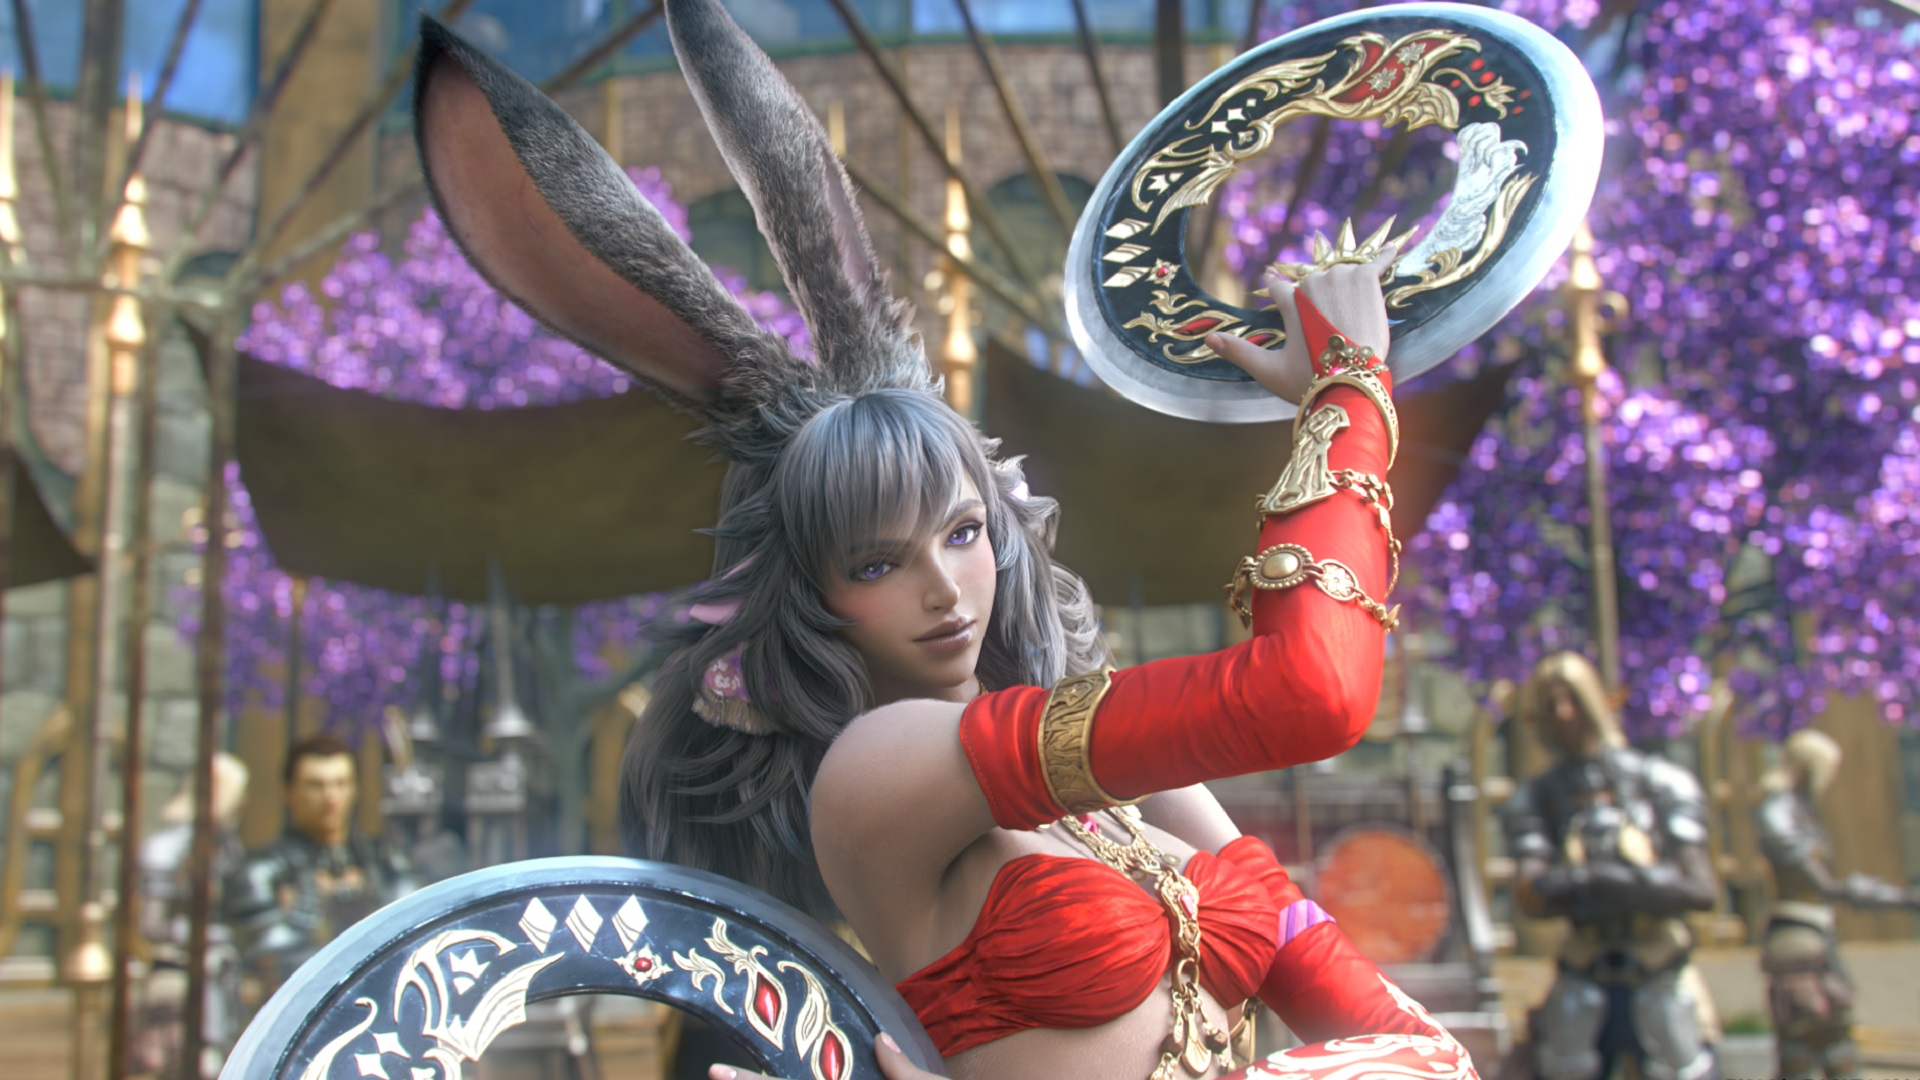 Final Fantasy XIV Dancer job guide: everything you need to know